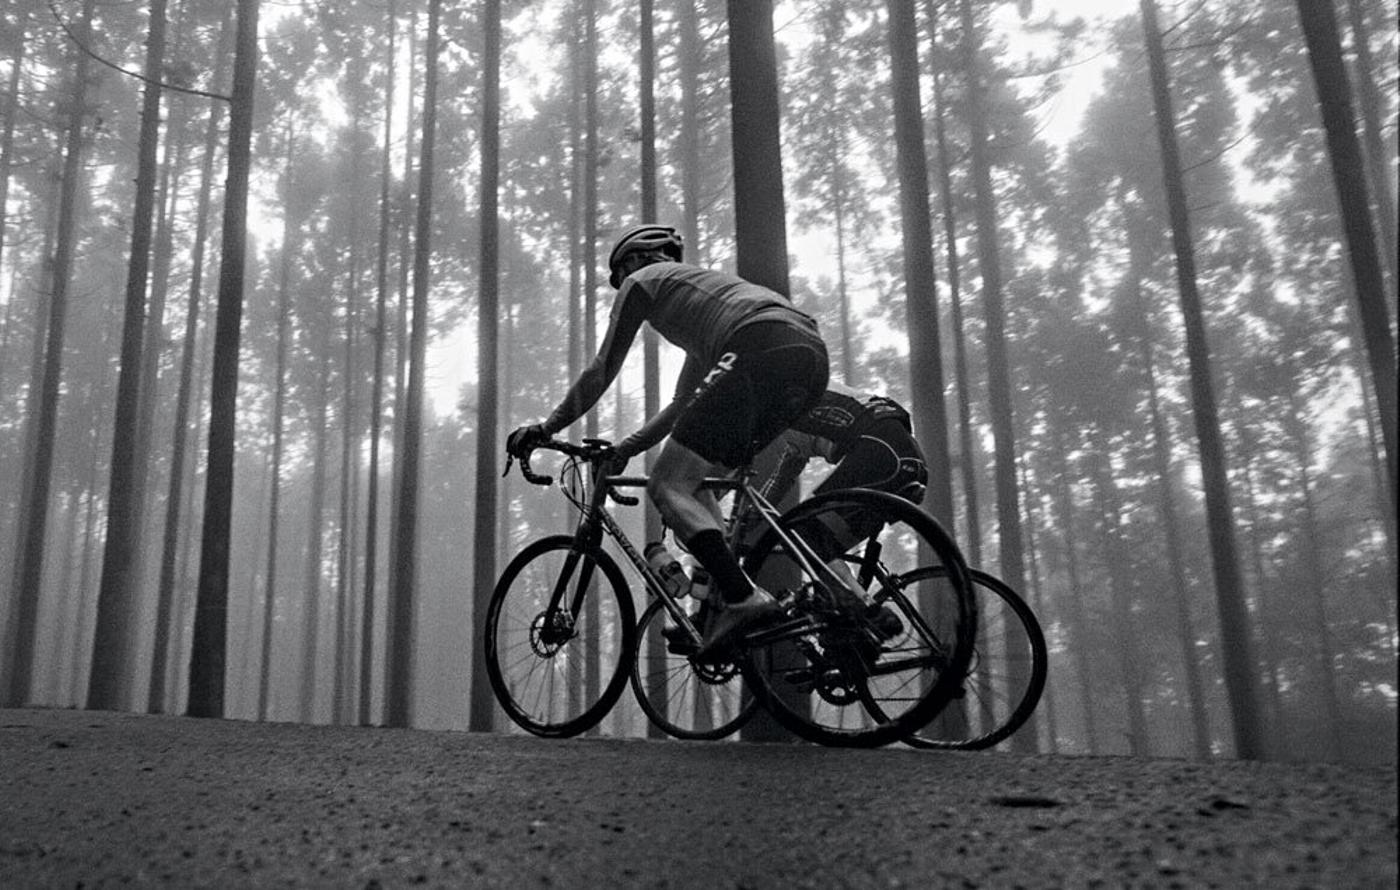 Bicycling: Under the Darkness of Depression a Cyclist Pursues Zen by Bike